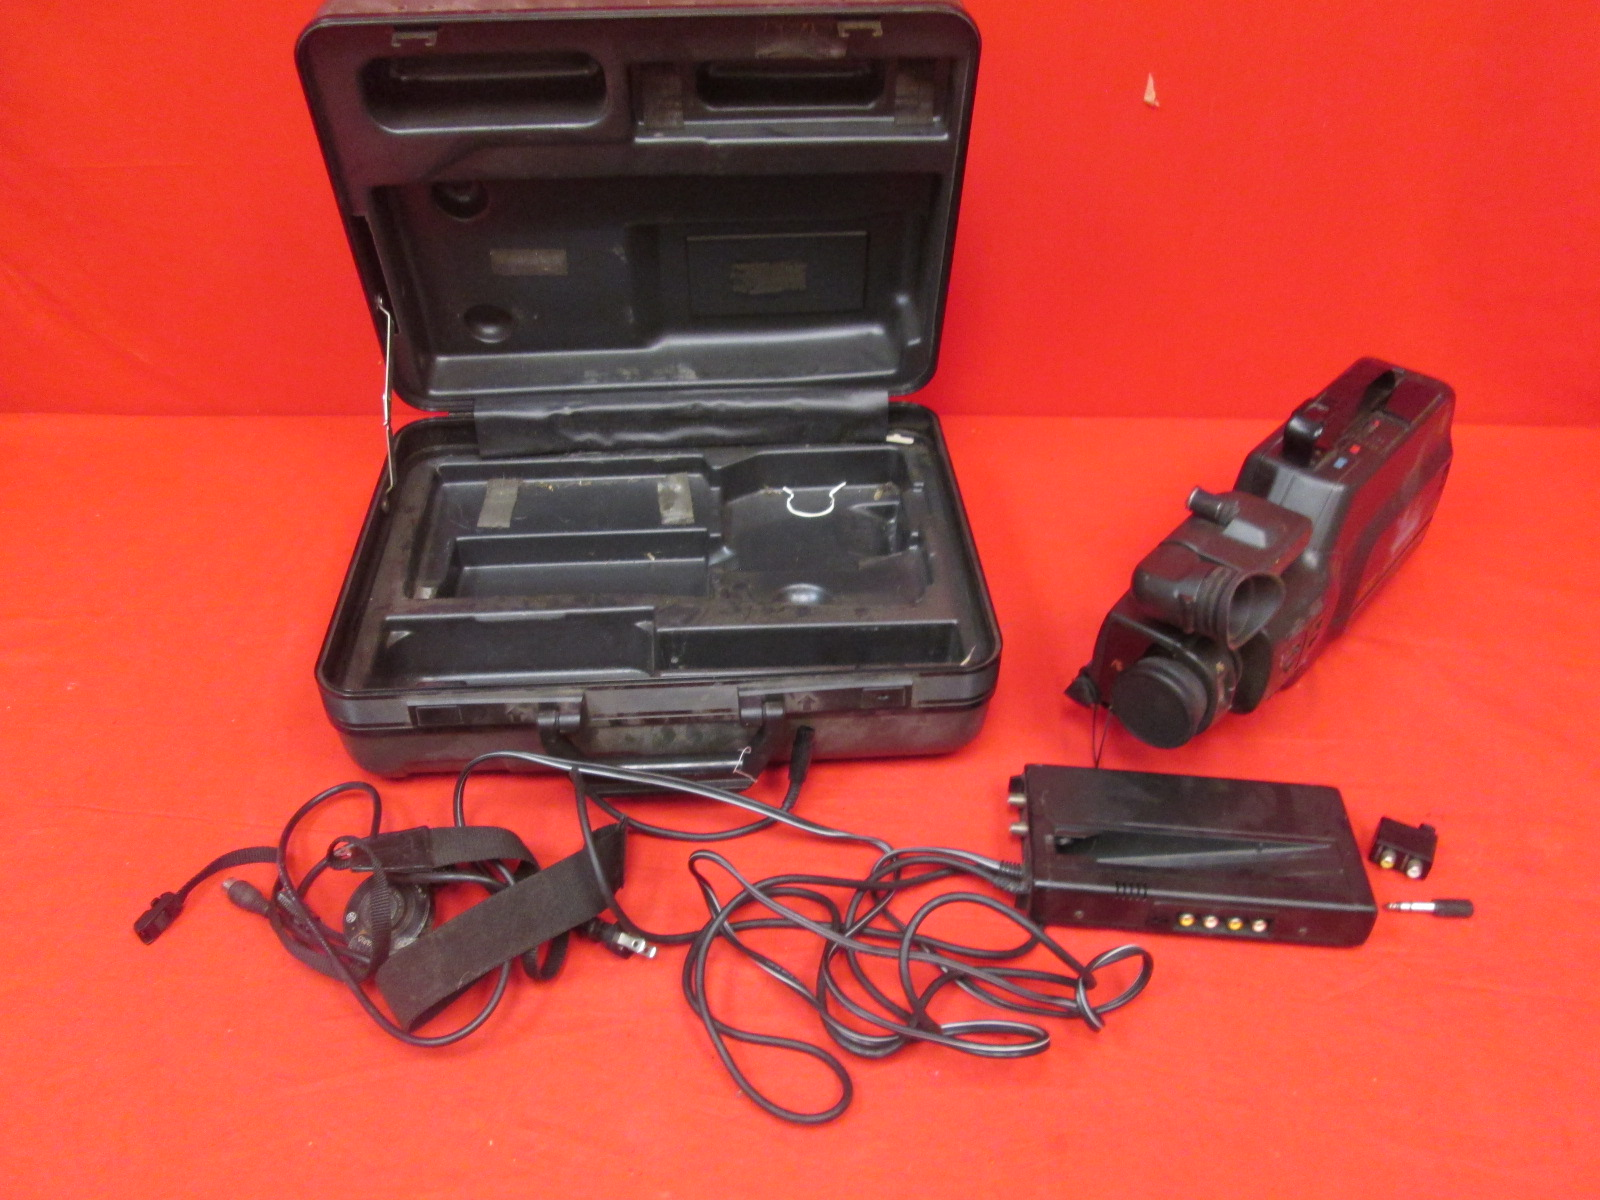 Broken Vintage GE Movie Video Camera System VHS CG-9908 Camcorder